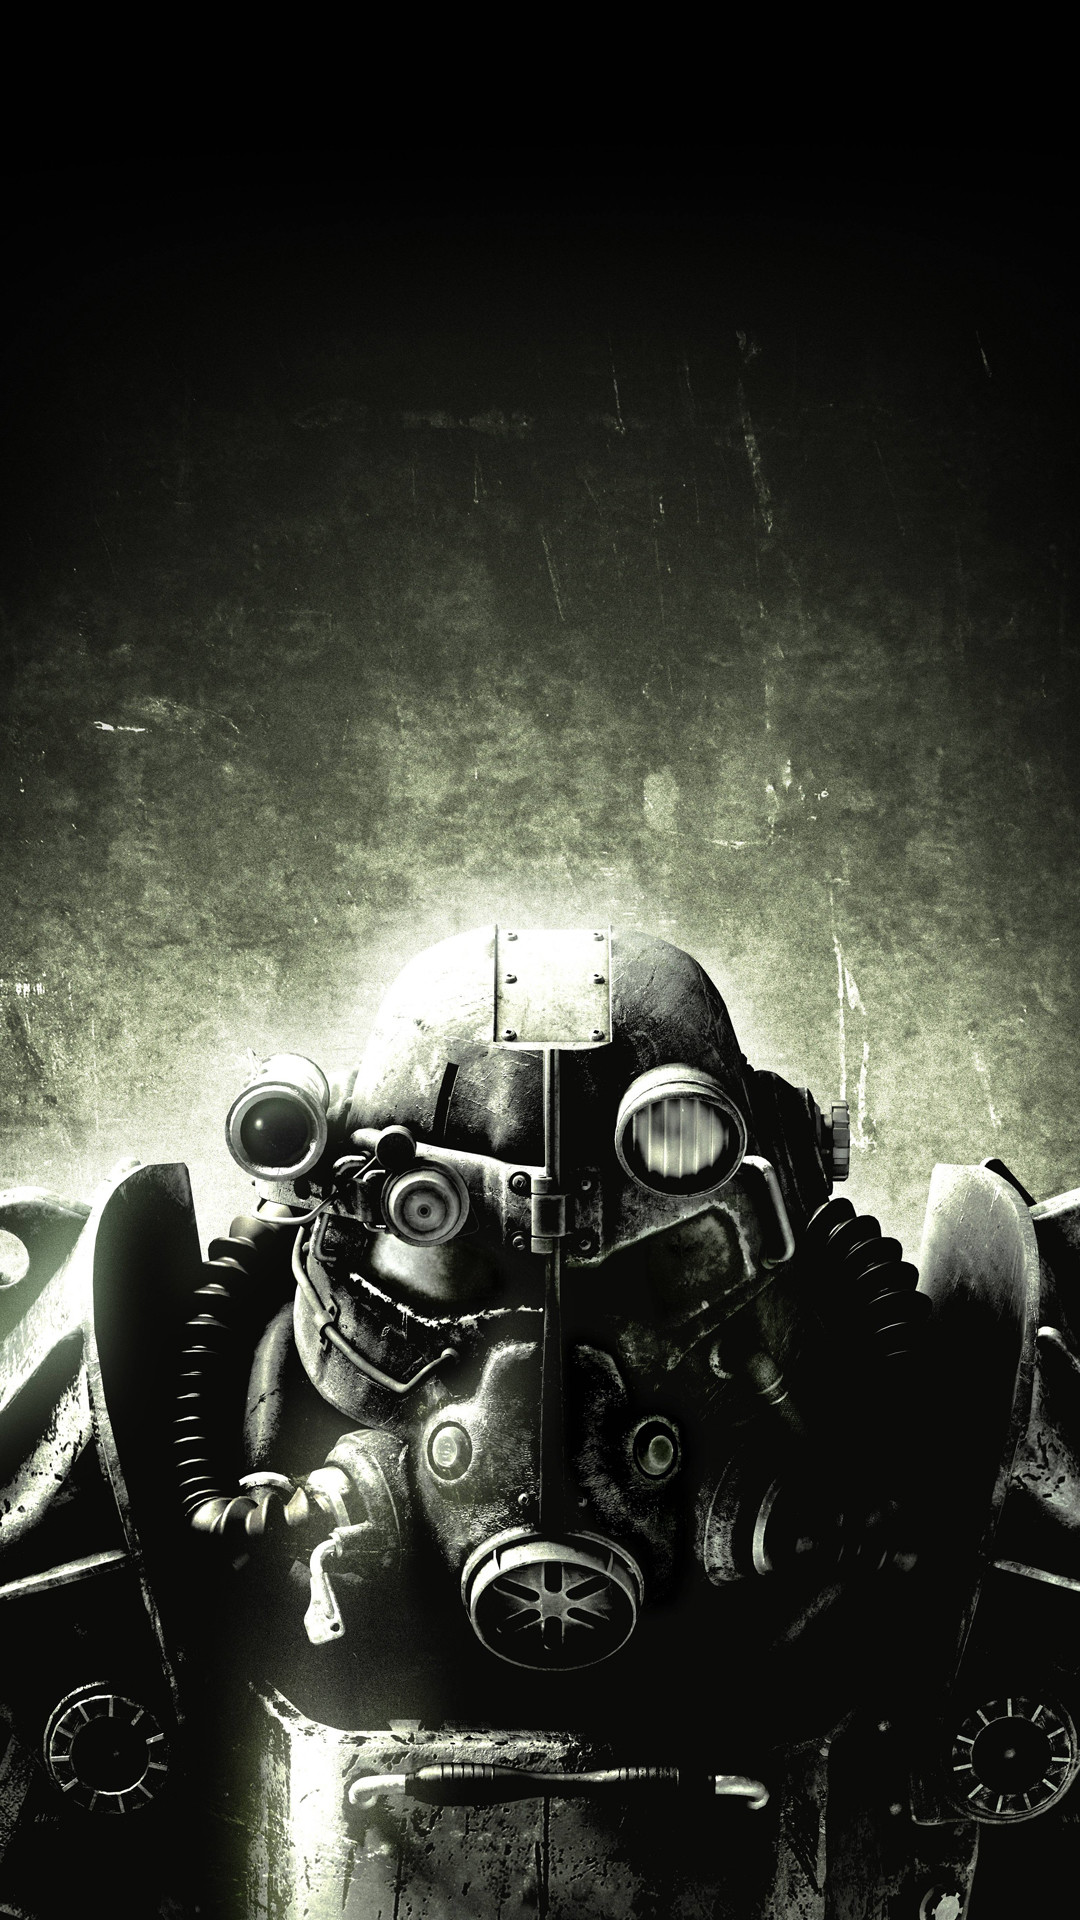 1080x1920 Fallout 4 htc one wallpaper - Best htc one wallpapersHTC wallpapers